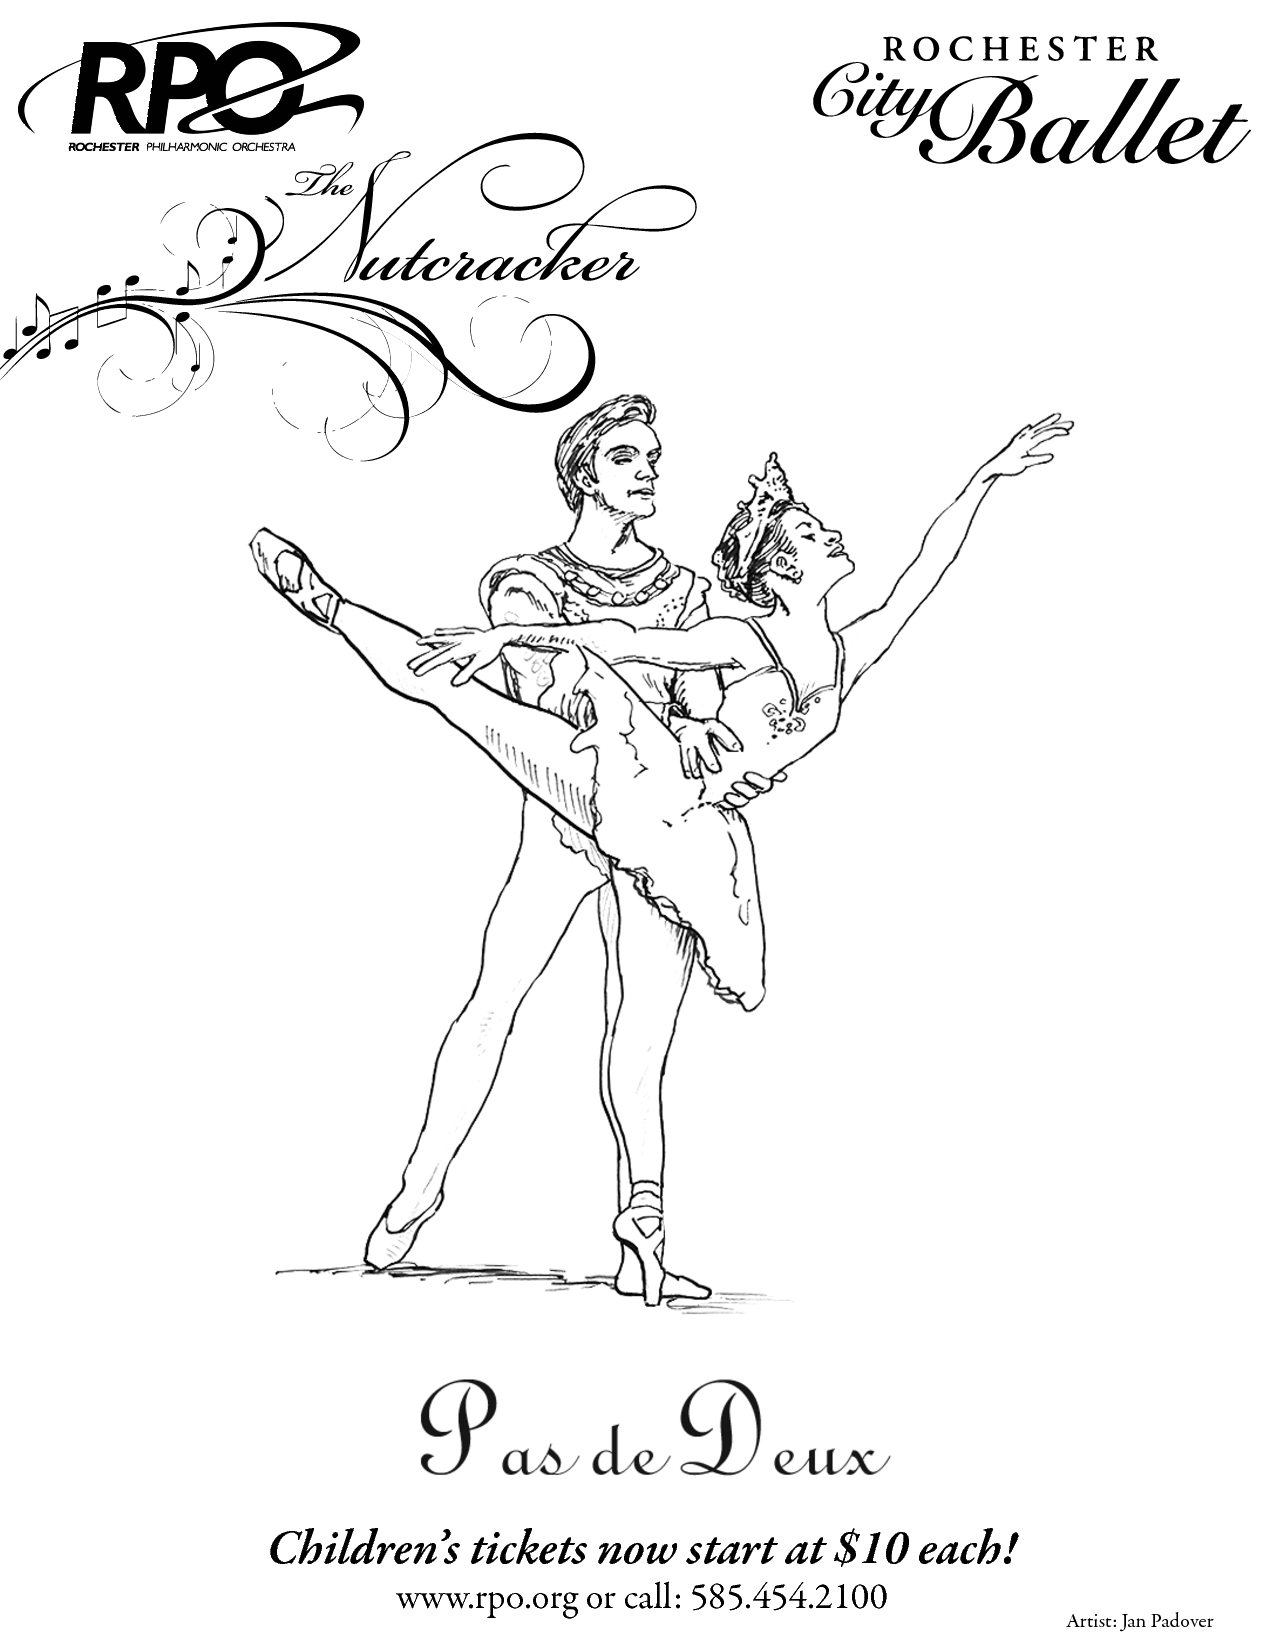 Action Beauty The Nutcracker Coloring Pages Images best nutcracker ballet coloring page annexhub pages for kids free az gallery images